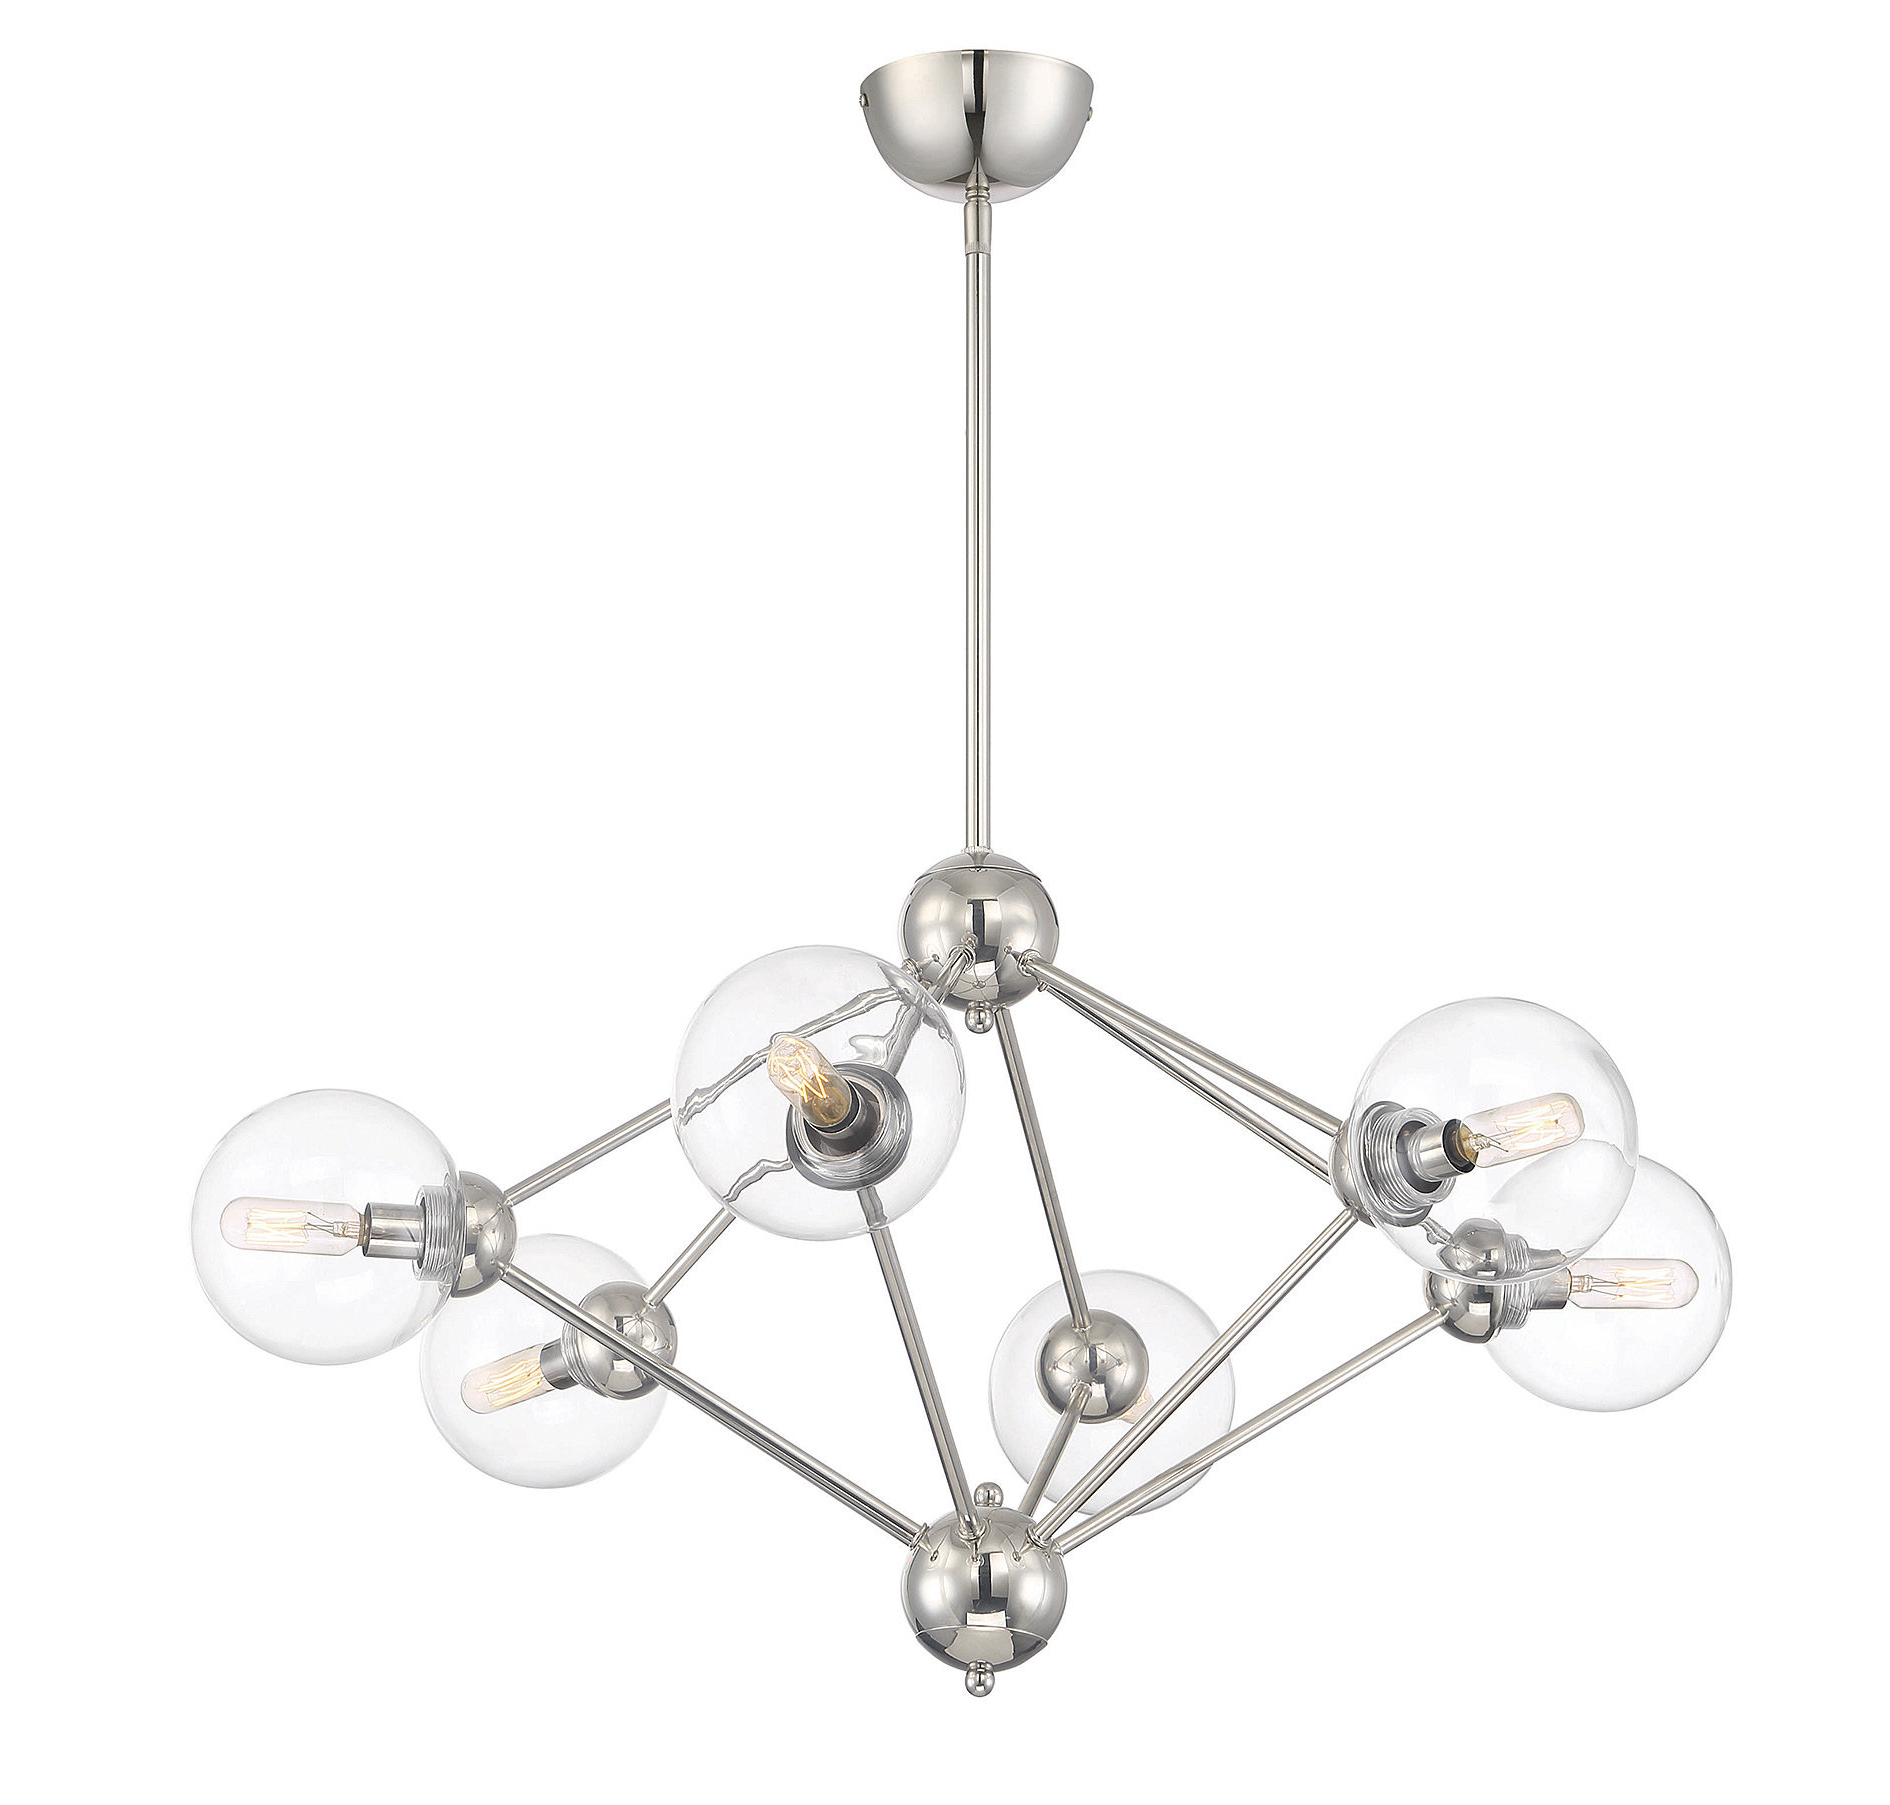 2019 Asher 12 Light Sputnik Chandeliers Intended For Valetta 6 Light Geometric Chandelier (View 1 of 20)